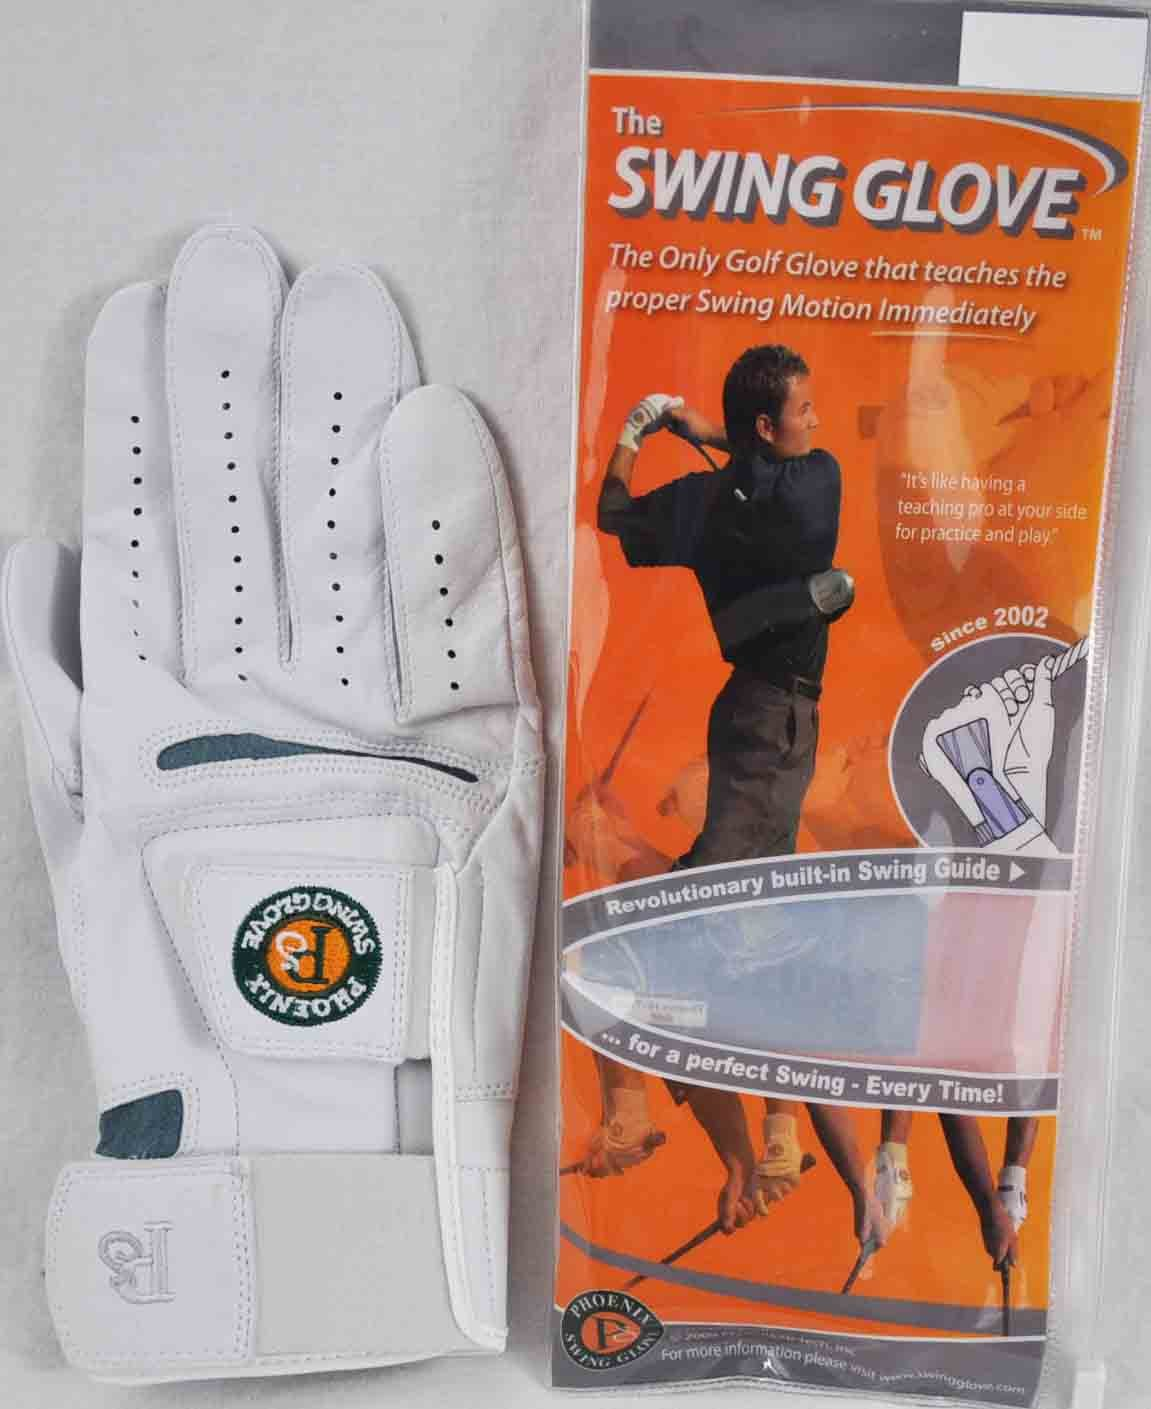 Swing Glove Women s Right Hand Immediate Golf Training Aid Play for Left Handed Golfer